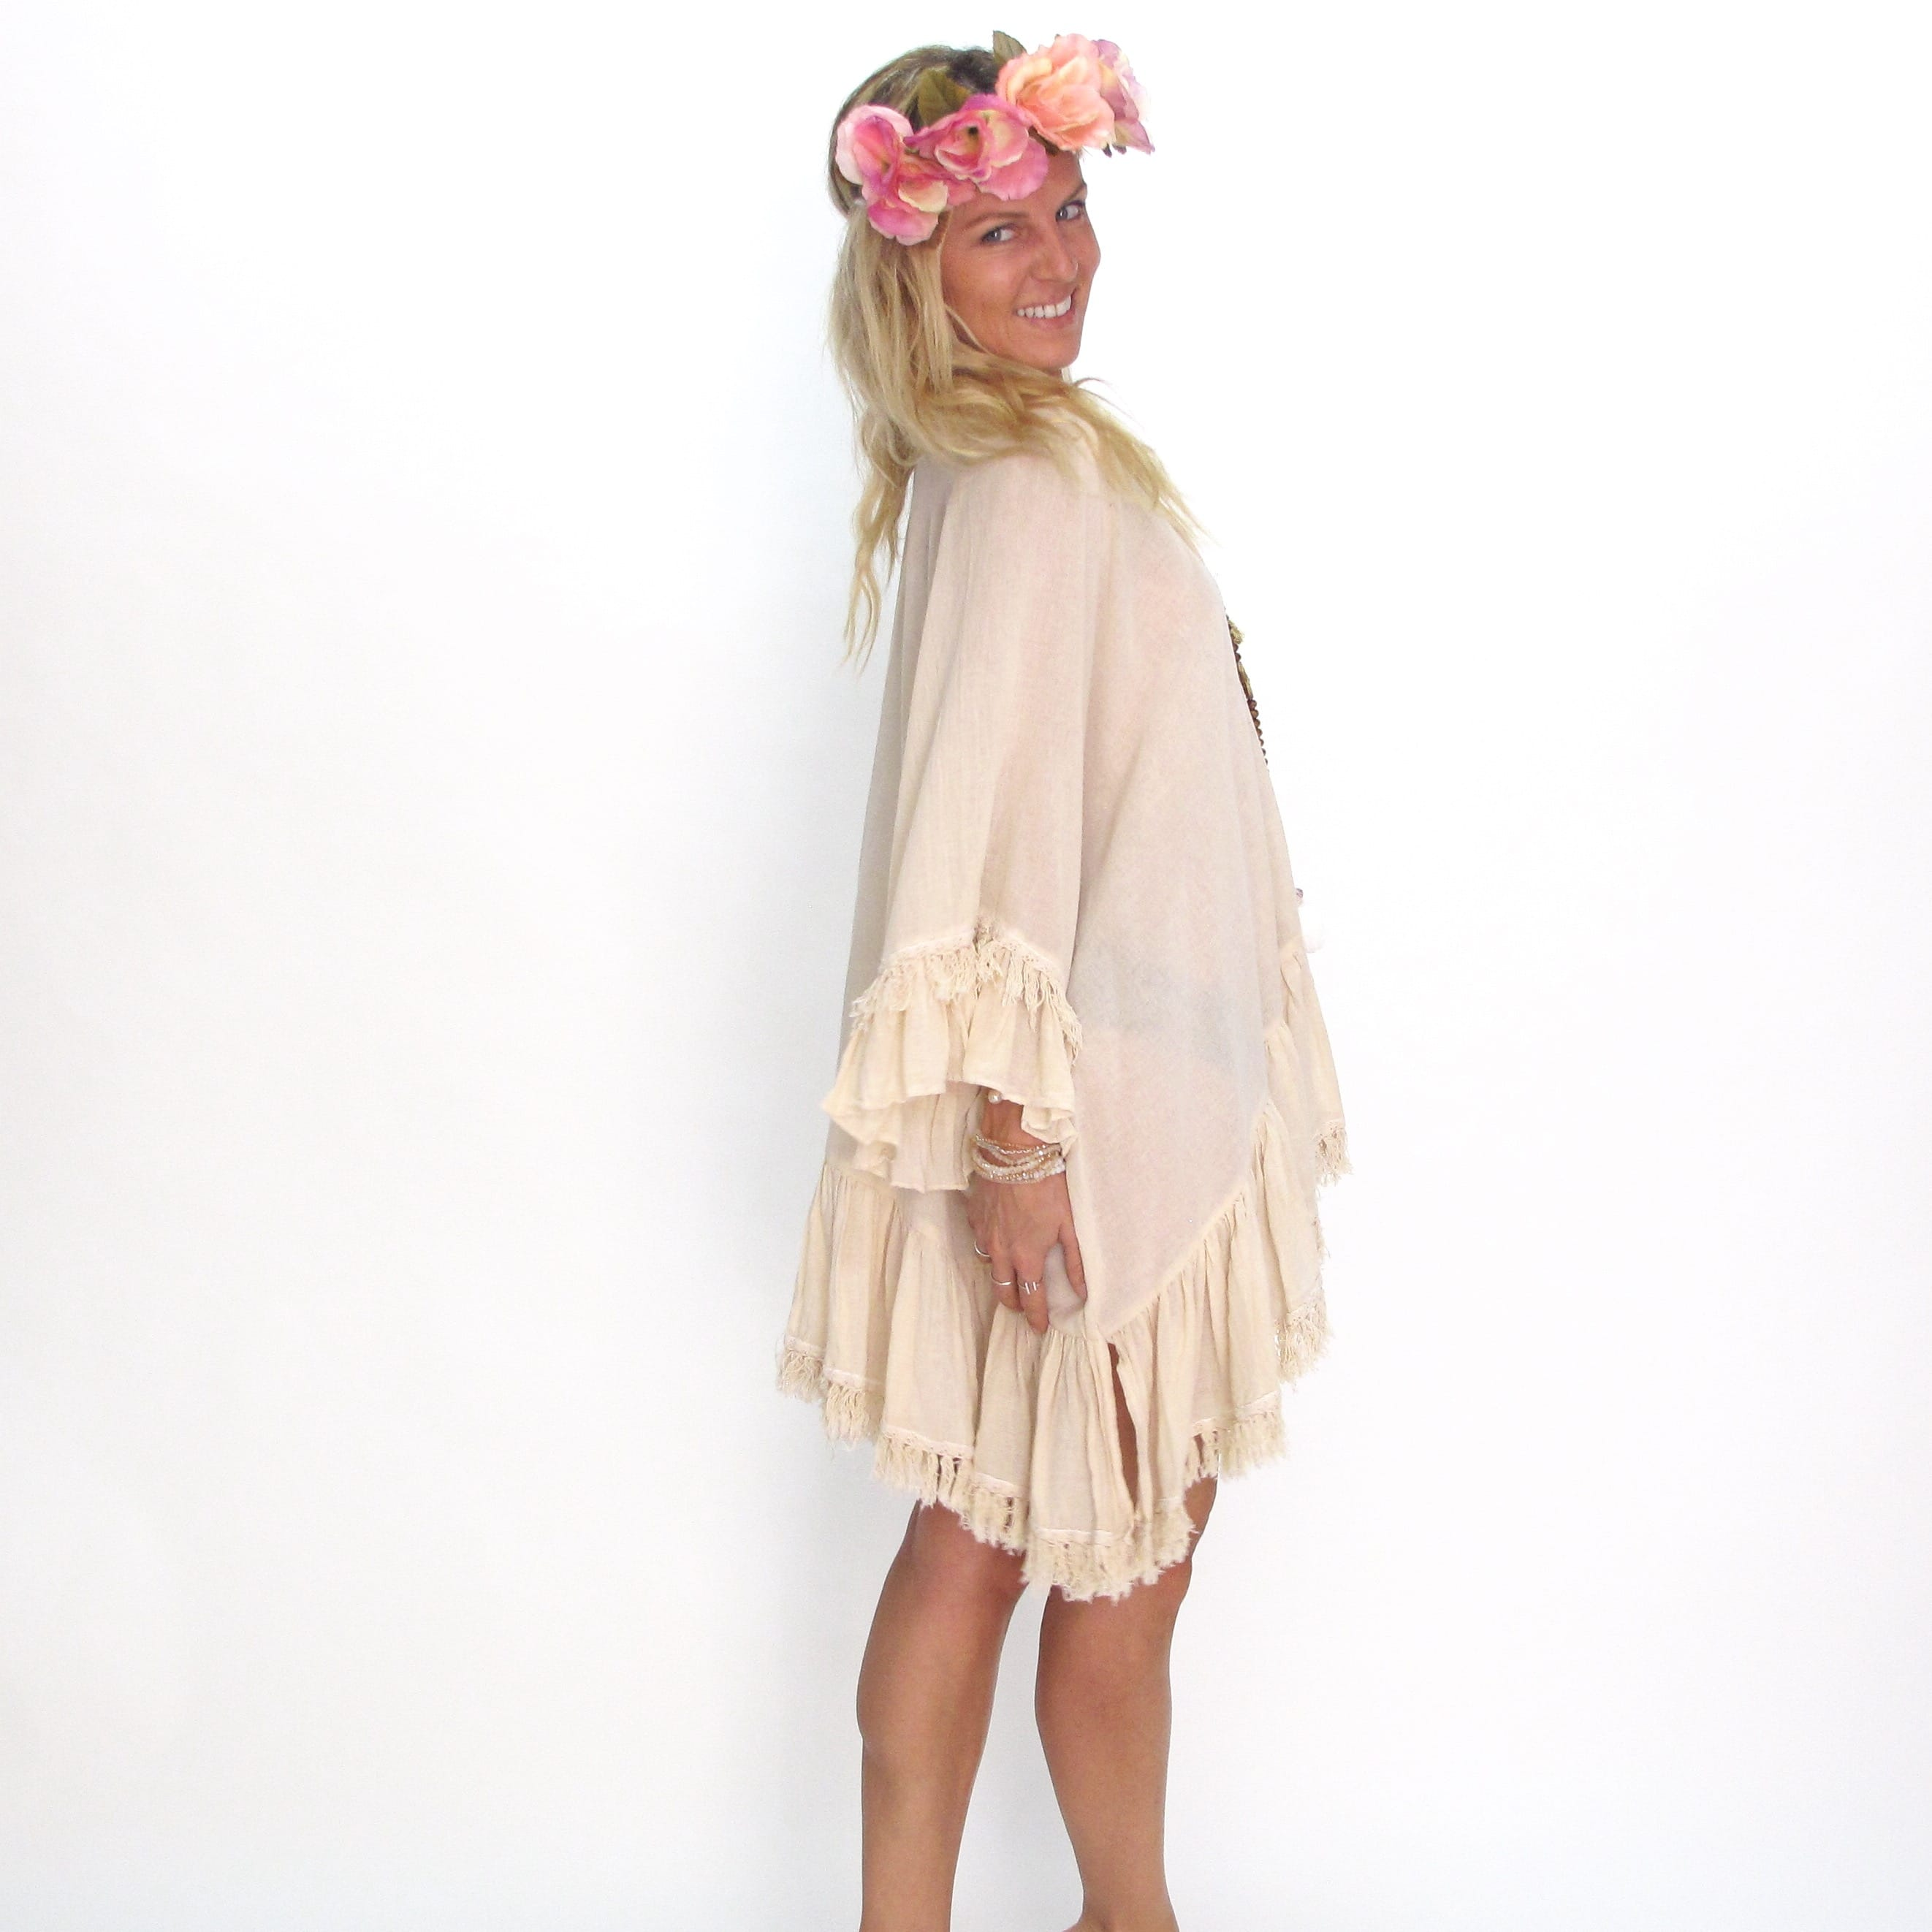 Poncho Beachy les neobourgeoises resortwear dress boheme robe boheme tunique boheme fashion brand beachwear vetement boheme clothe beachwear clothe resortwear boutique accessoirs boheme